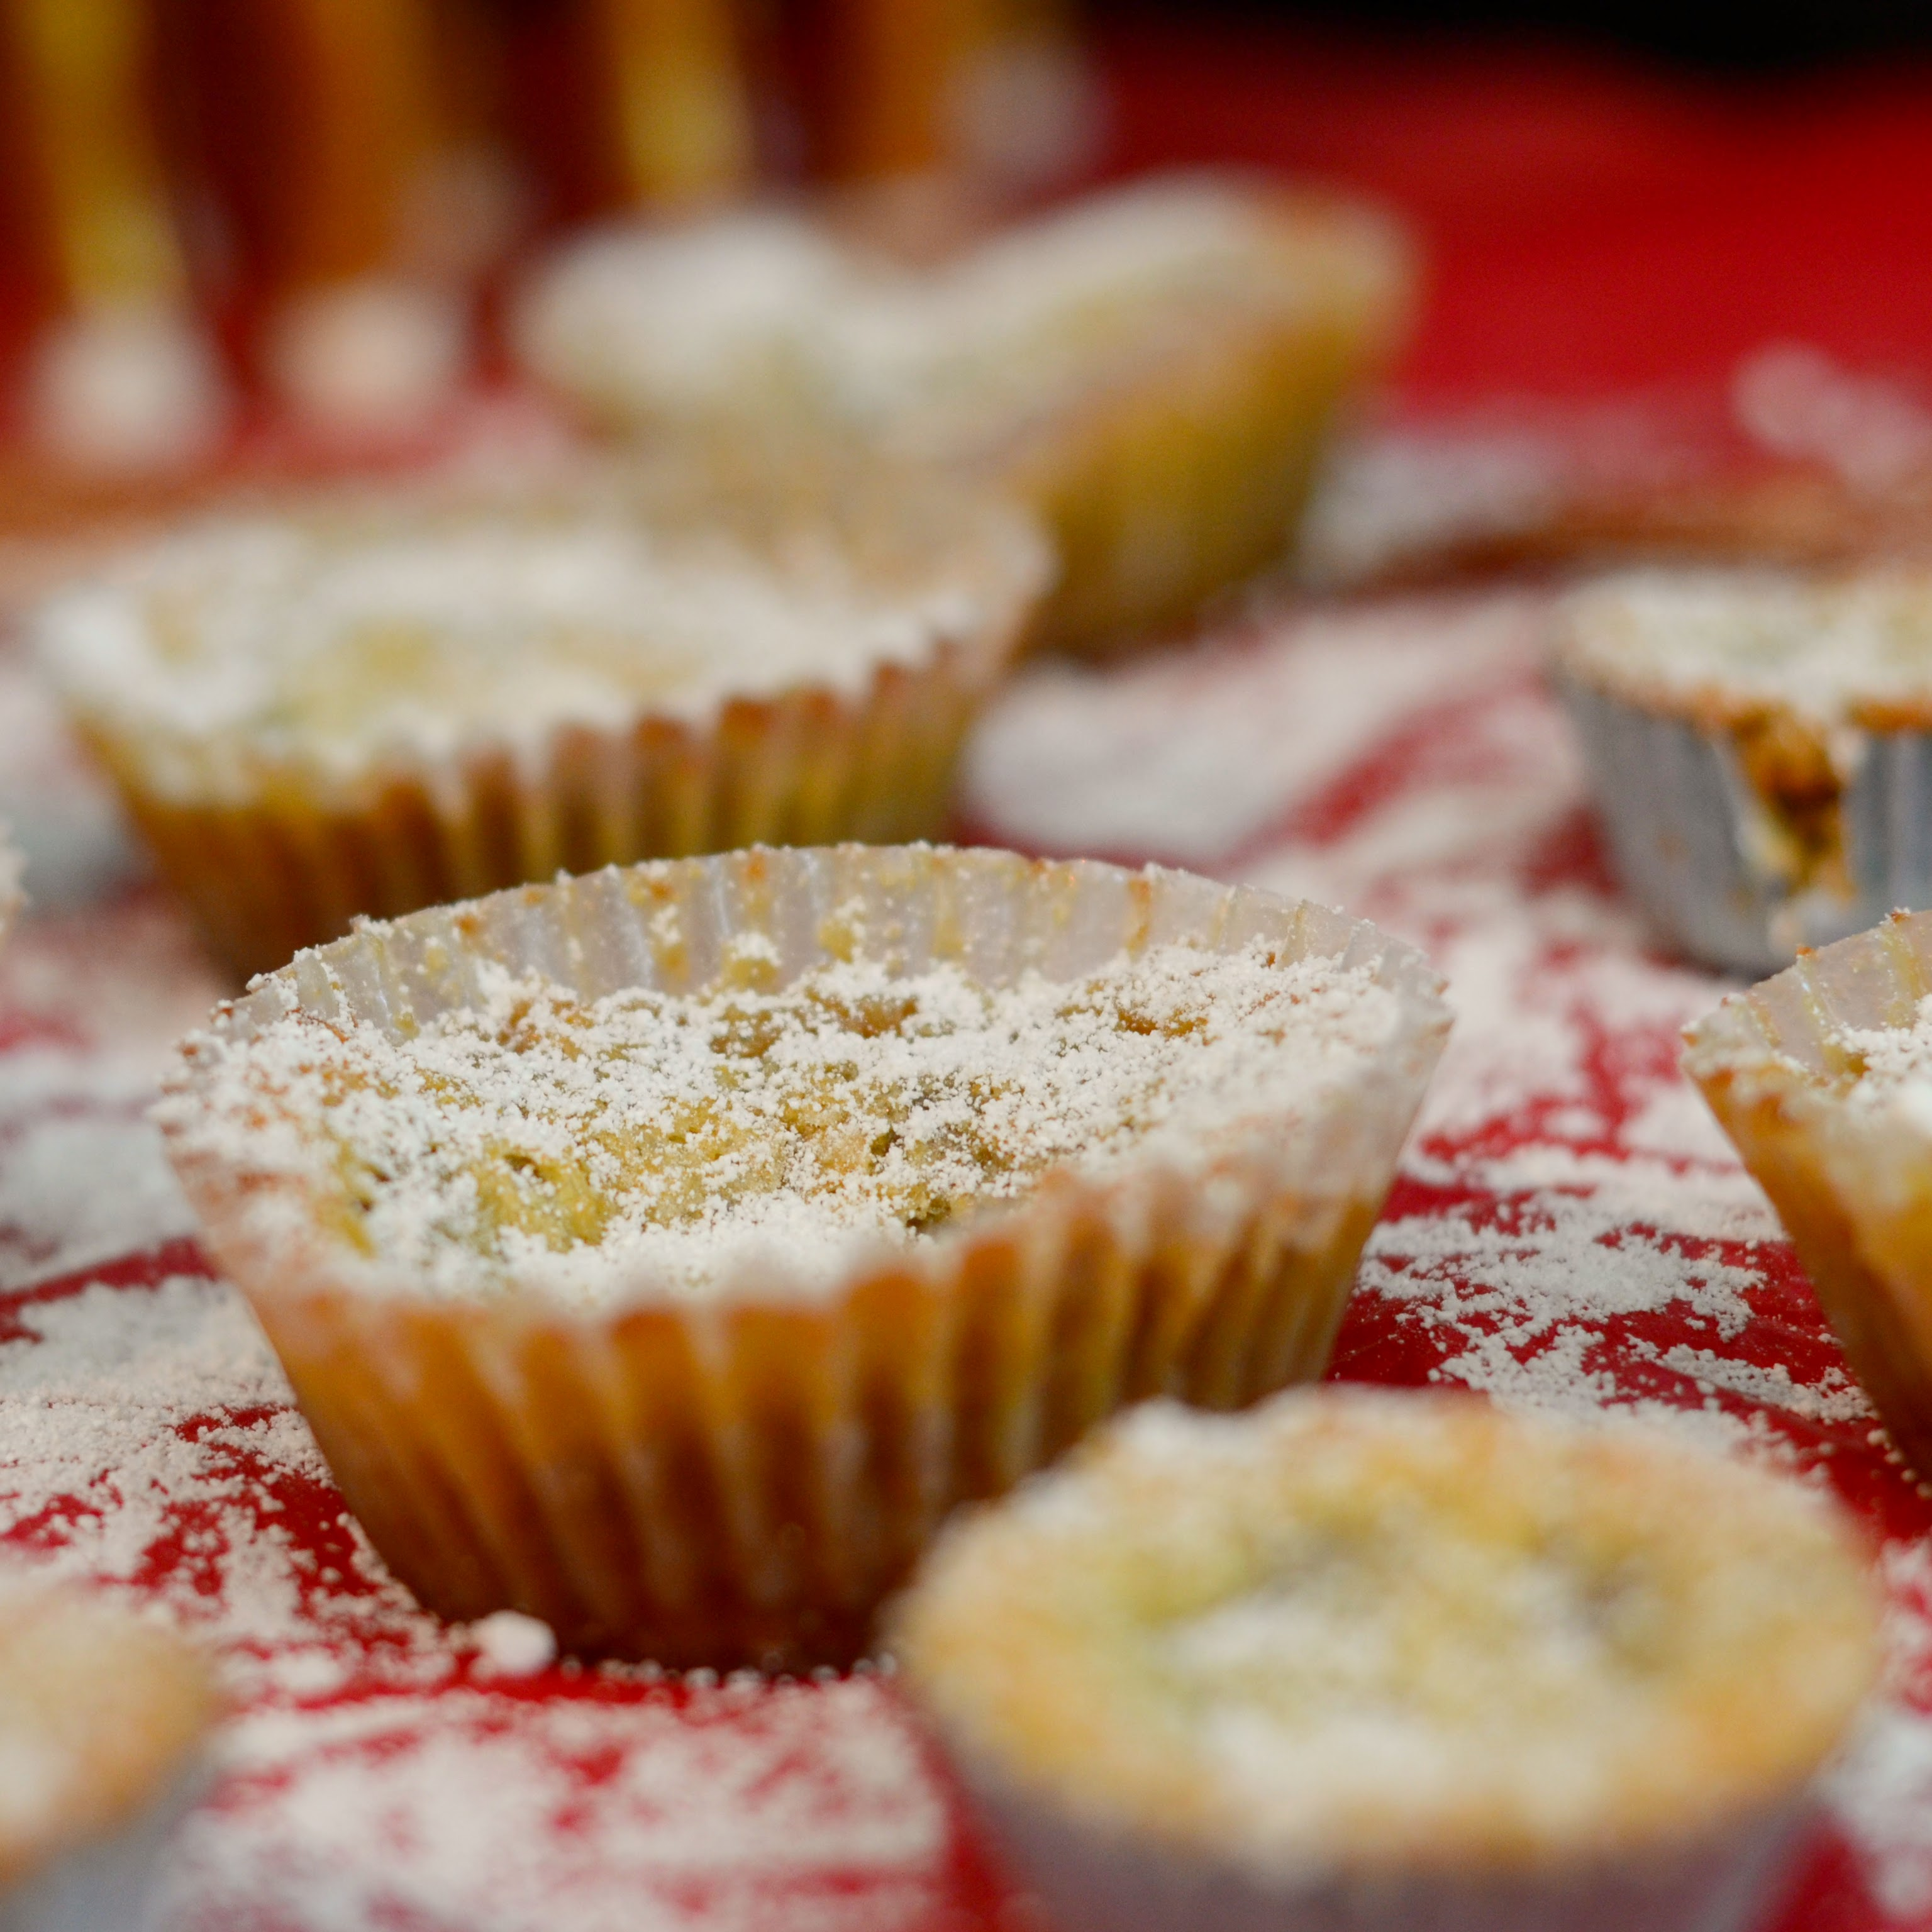 Crack Pie Cookies sprinkled with powdered sugar on red background